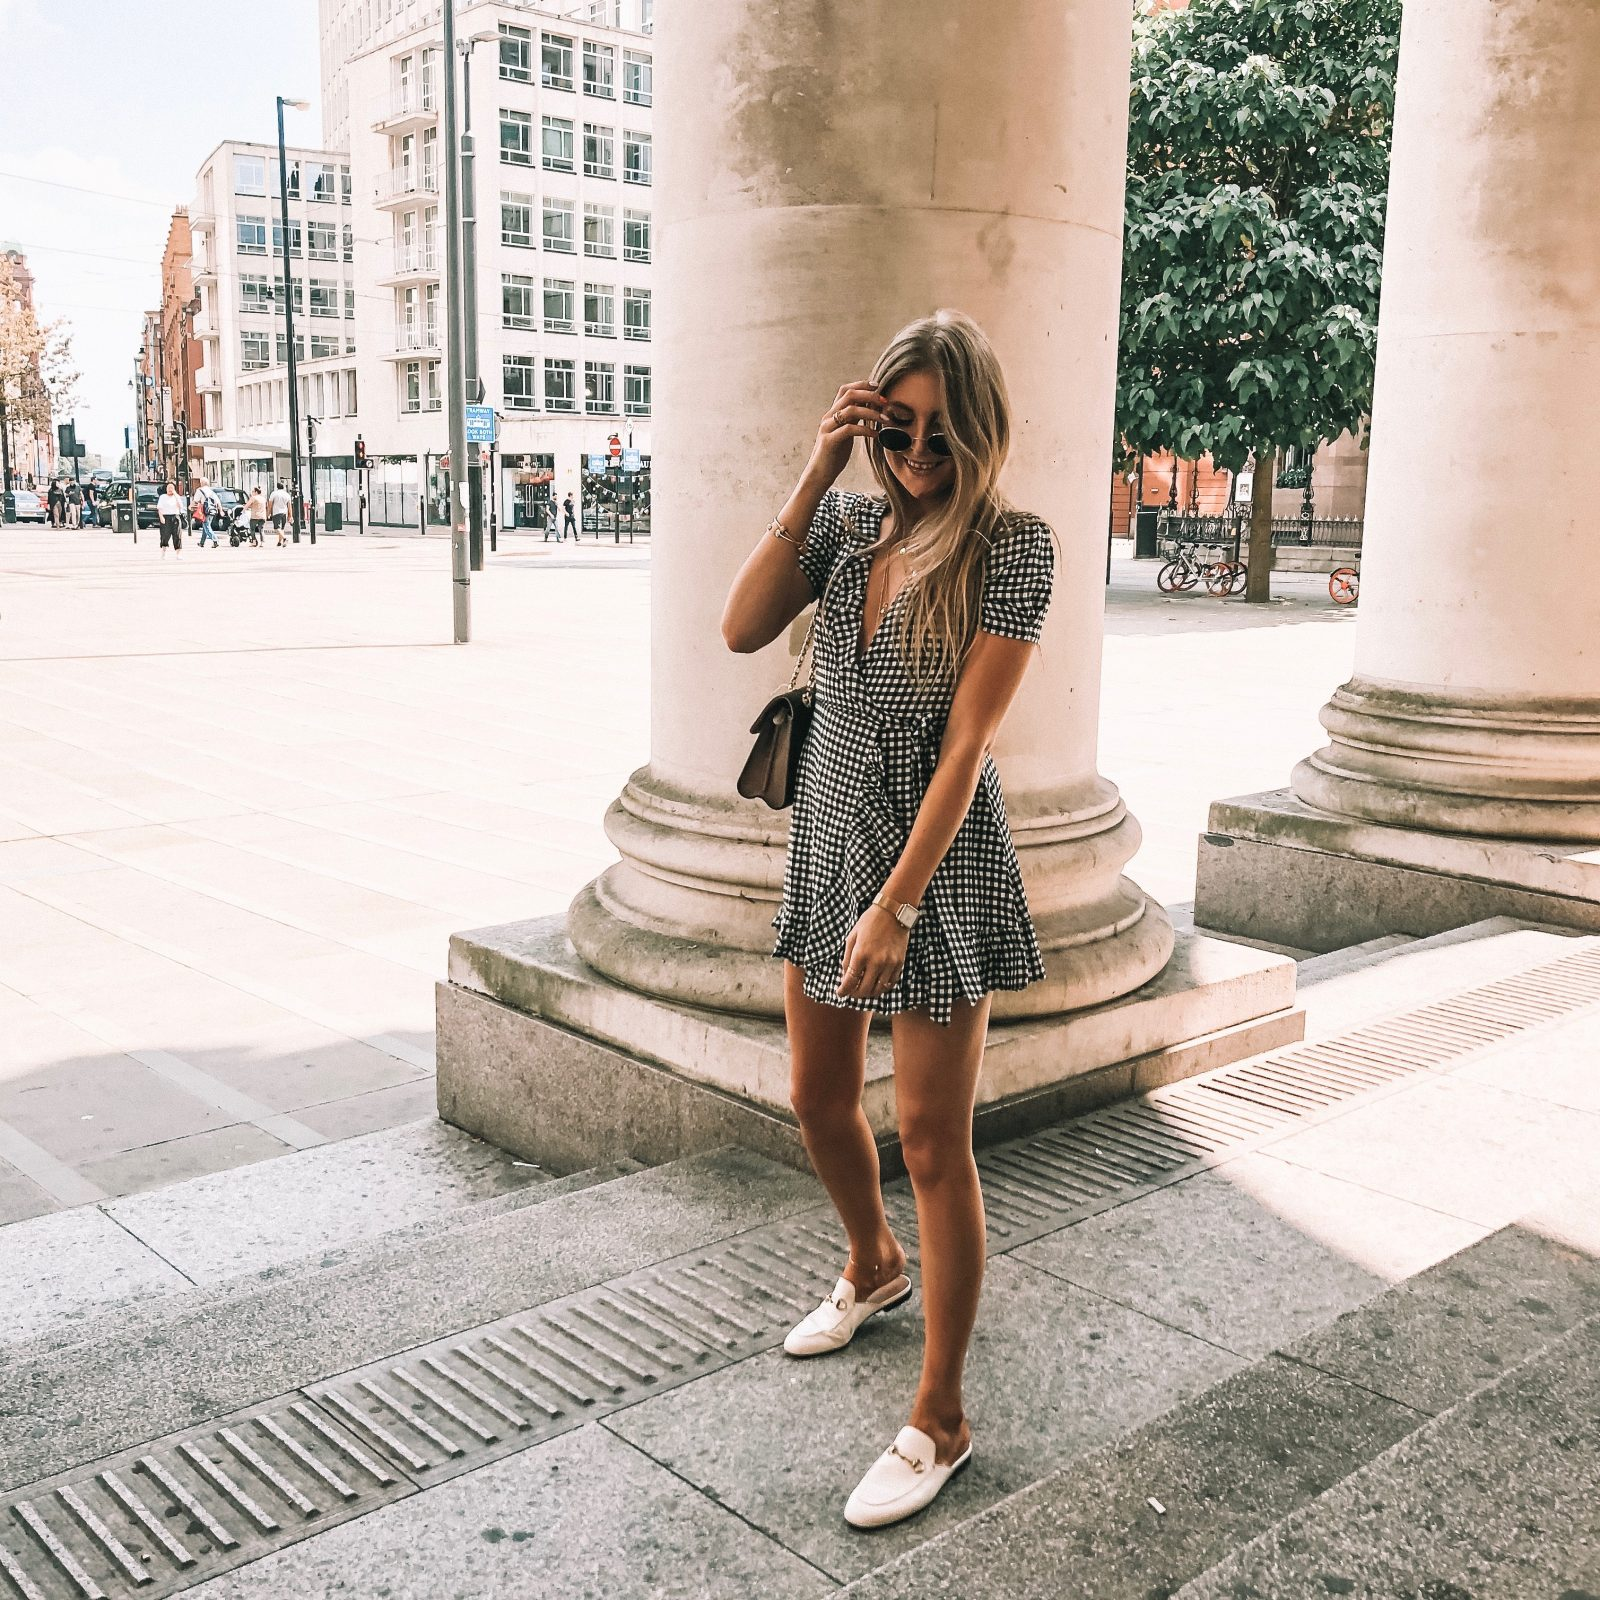 Revolve Summer Style - Fashion Blogger Sinead Crowe